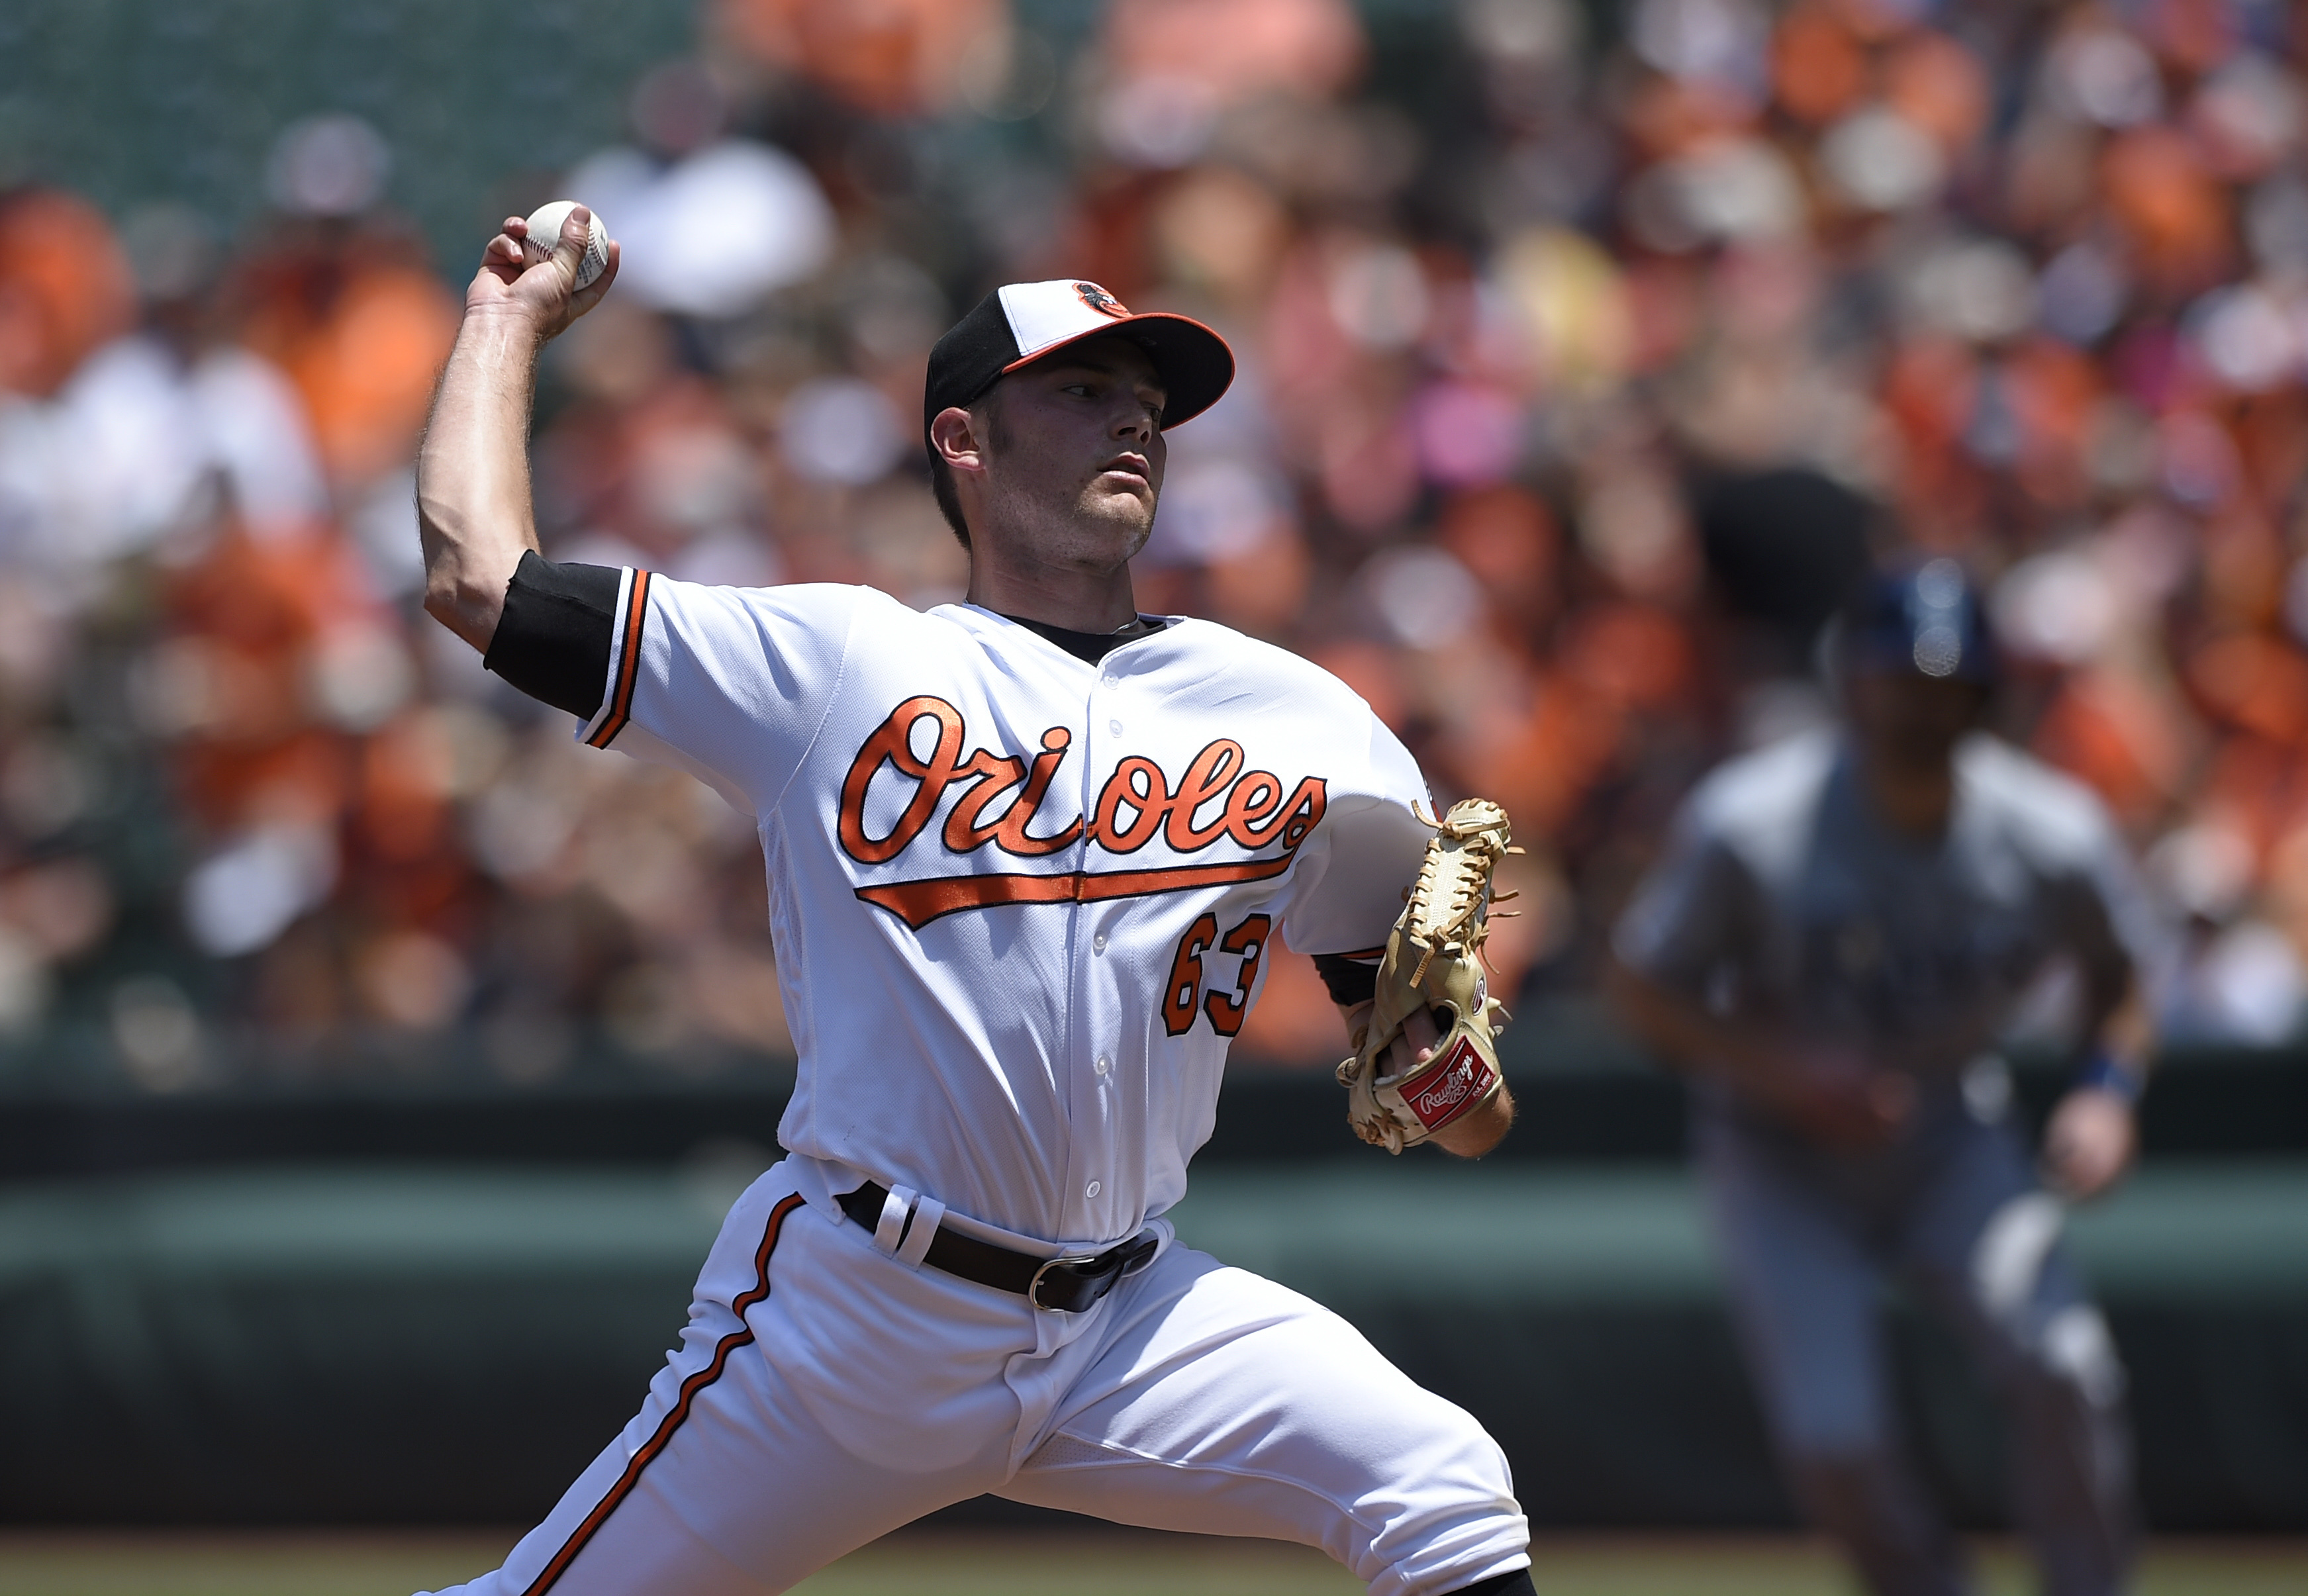 Baltimore Orioles starting pitcher Tyler Wilson delivers during the first inning of a baseball game against the Tampa Bay Rays, Sunday, June 26, 2016, in Baltimore. (AP Photo/Nick Wass)